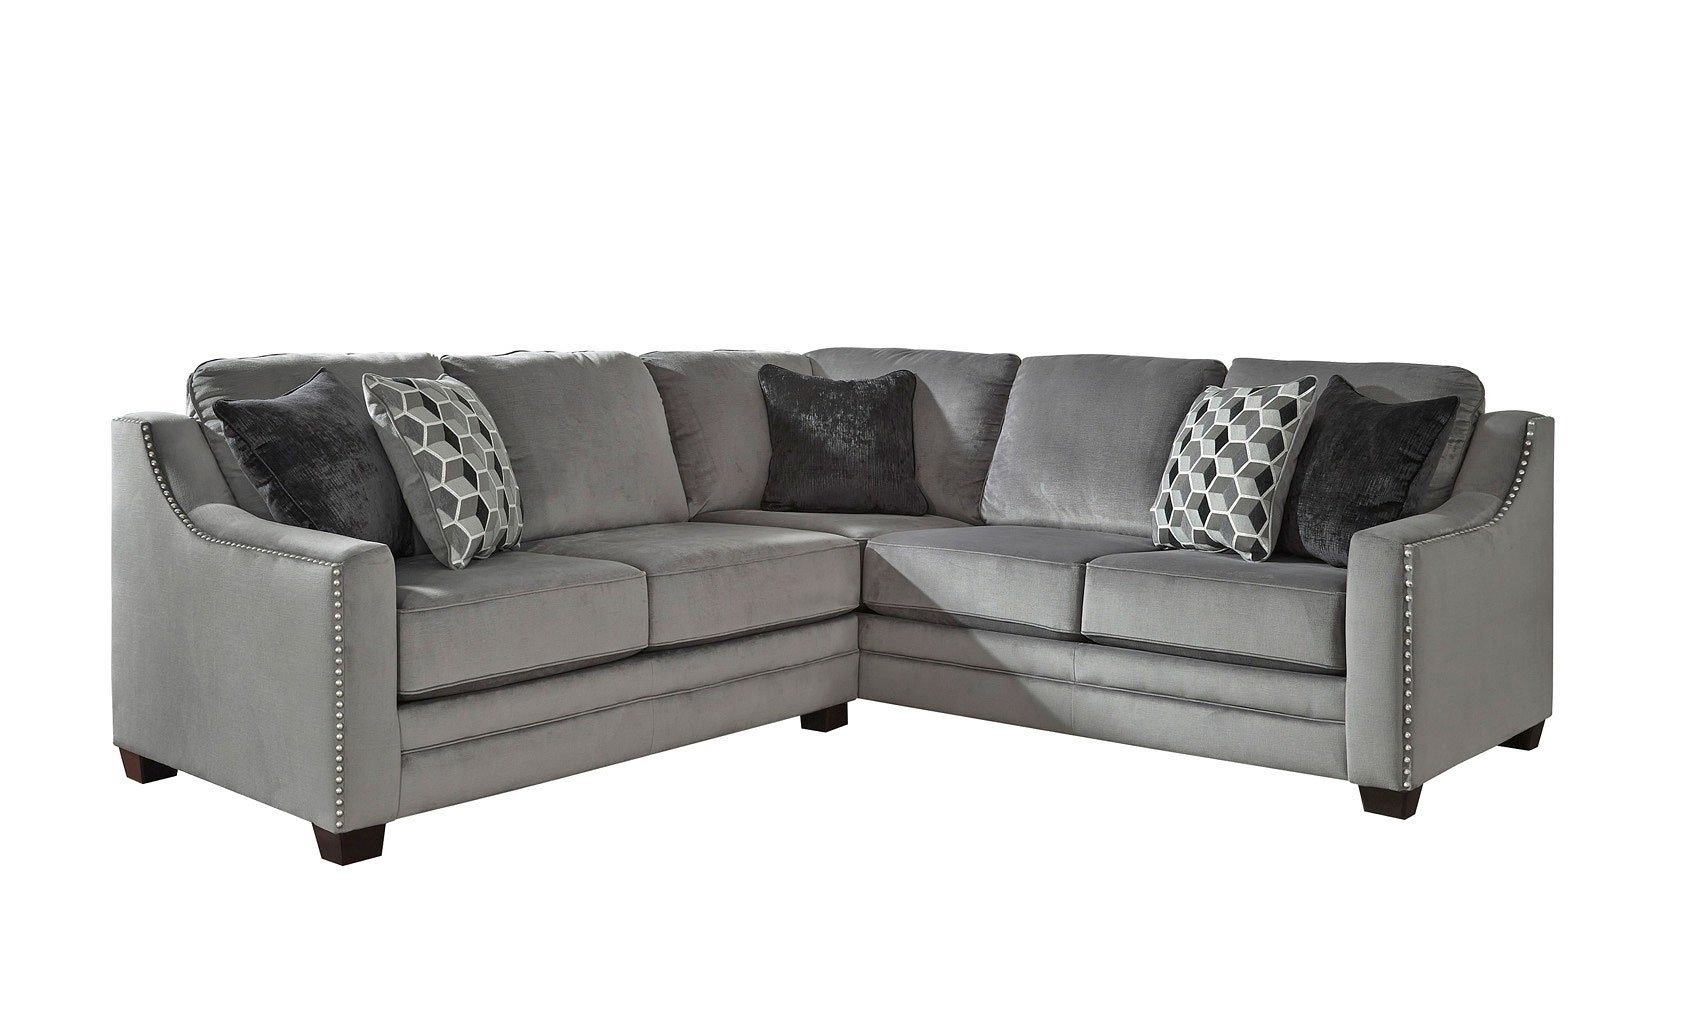 Loveseat Sectional | Whitecraftwoodard Mona Wicker Right Arm Inside Turdur 2 Piece Sectionals With Laf Loveseat (Image 12 of 25)